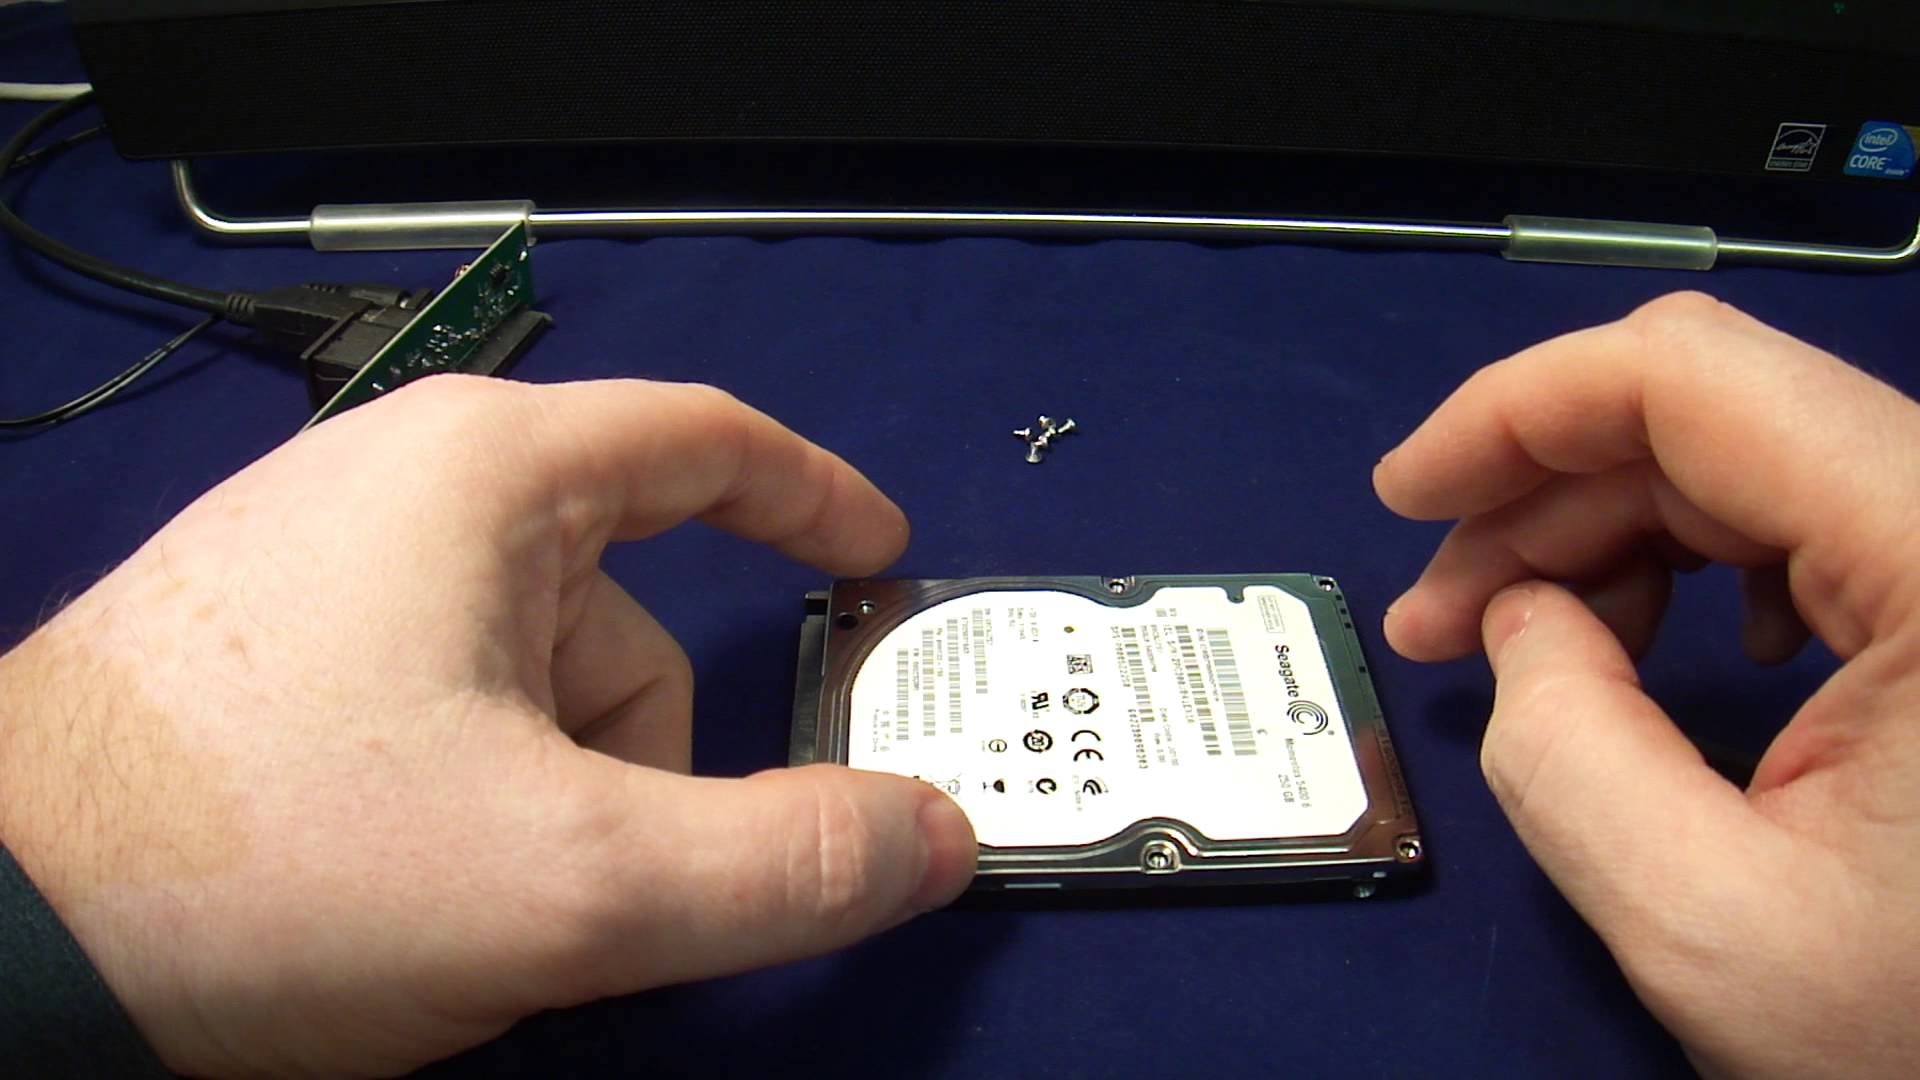 DIY Video 2 How to fix a broken hard drive Beeping noise Get your data Back! Best Kept Secret 2